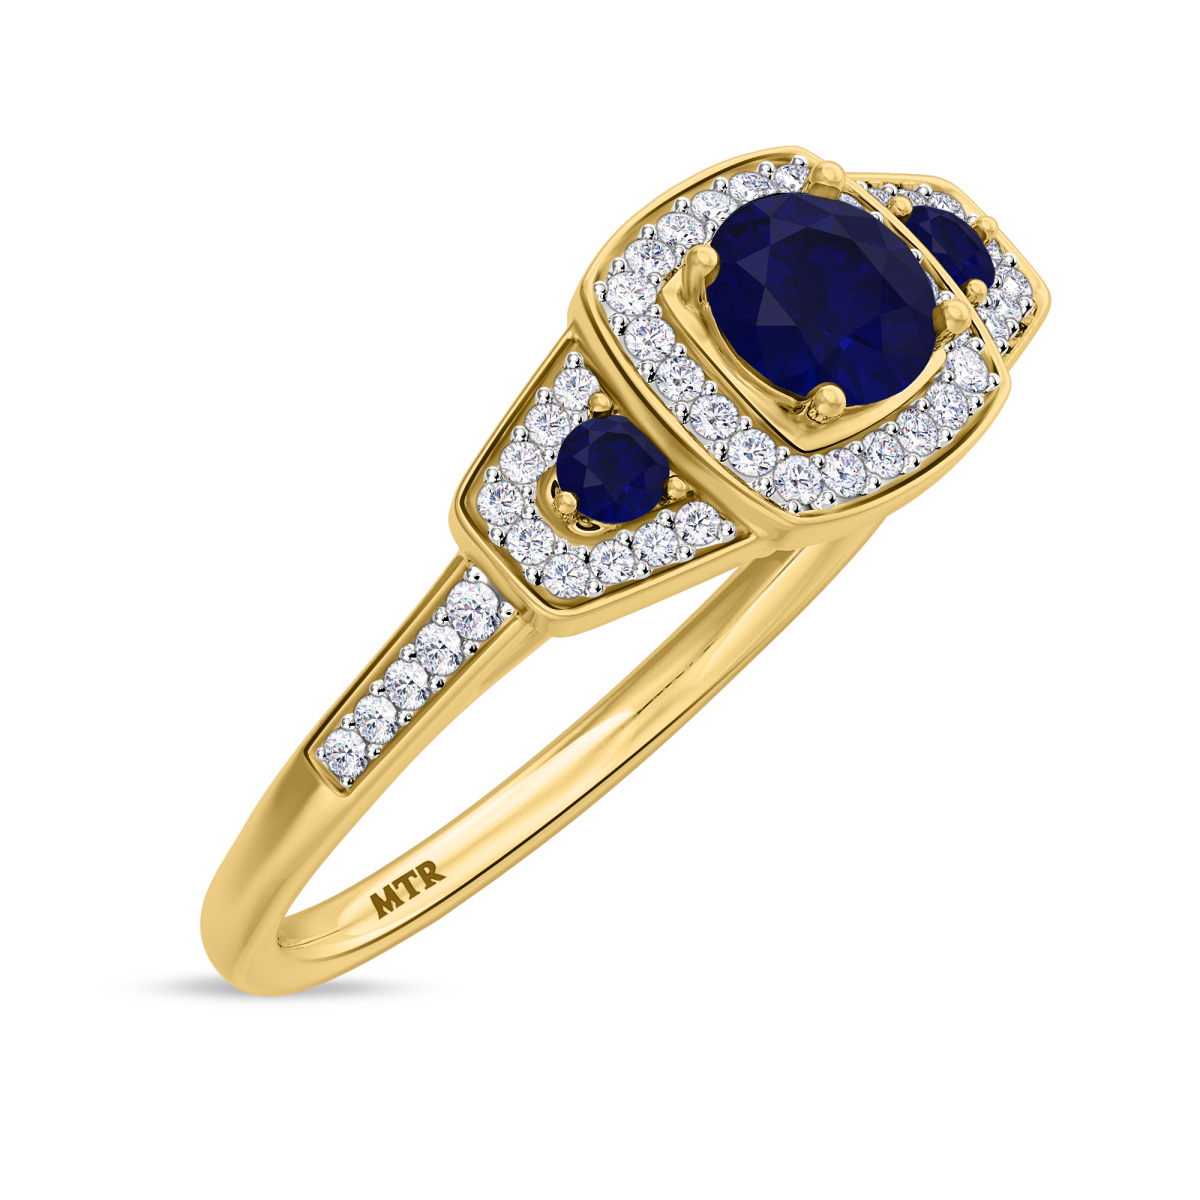 7/8 CT. T.W. Sapphire Engagement Ring 14K Yellow Gold